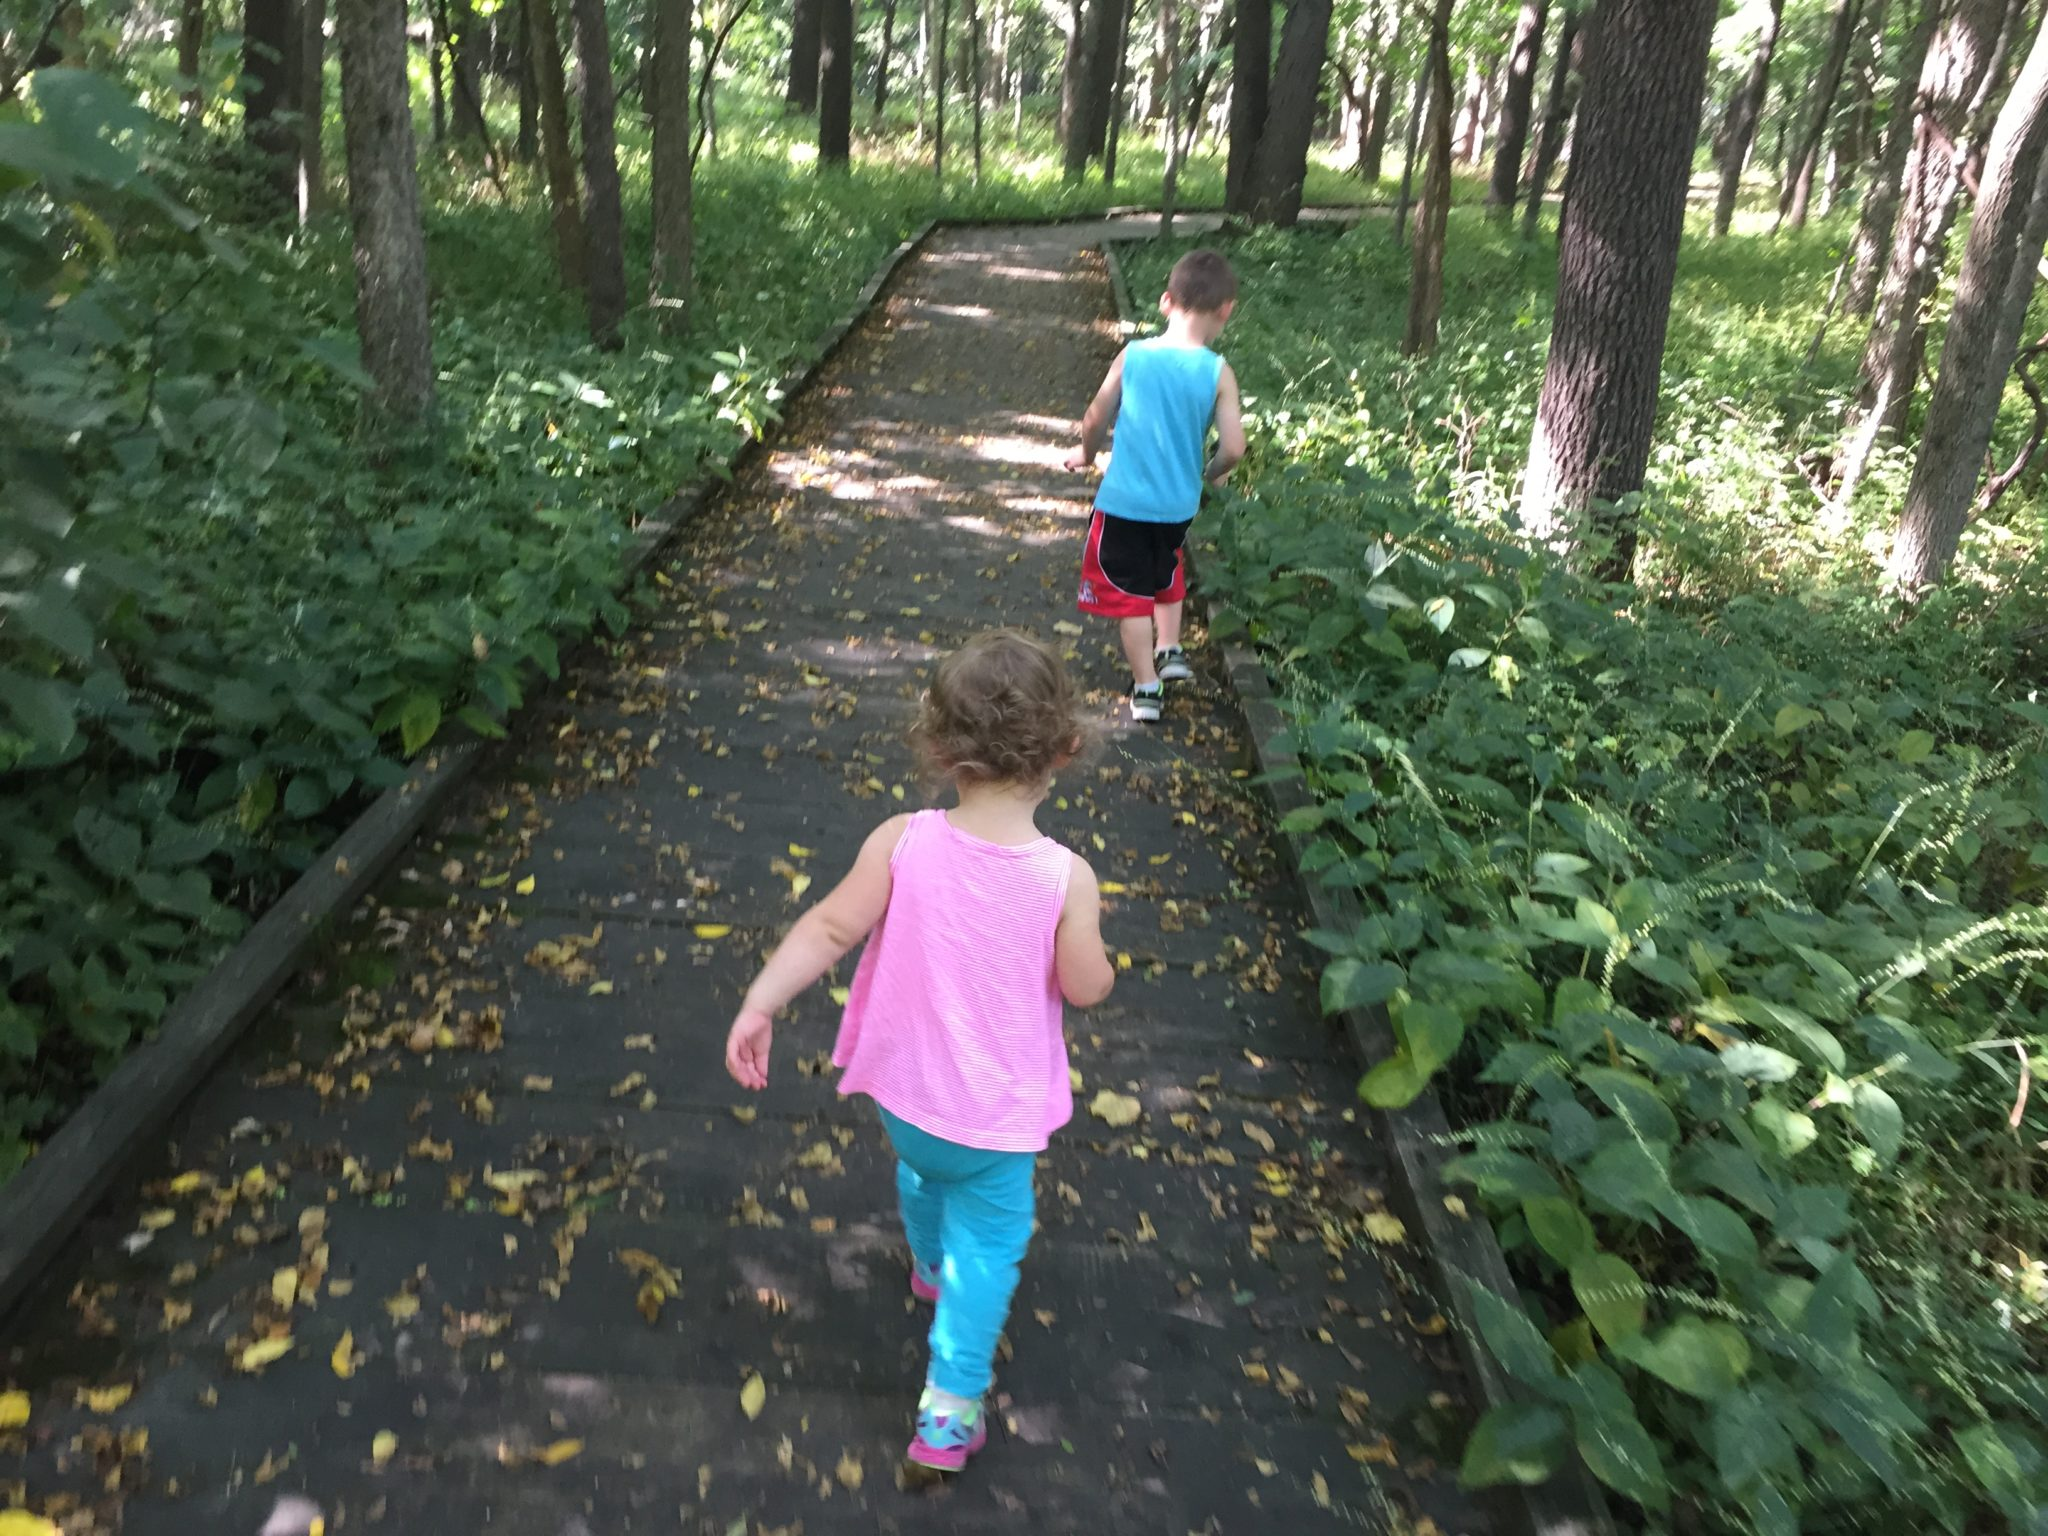 Hiking Trails For Families in the Champaign-Urbana Area